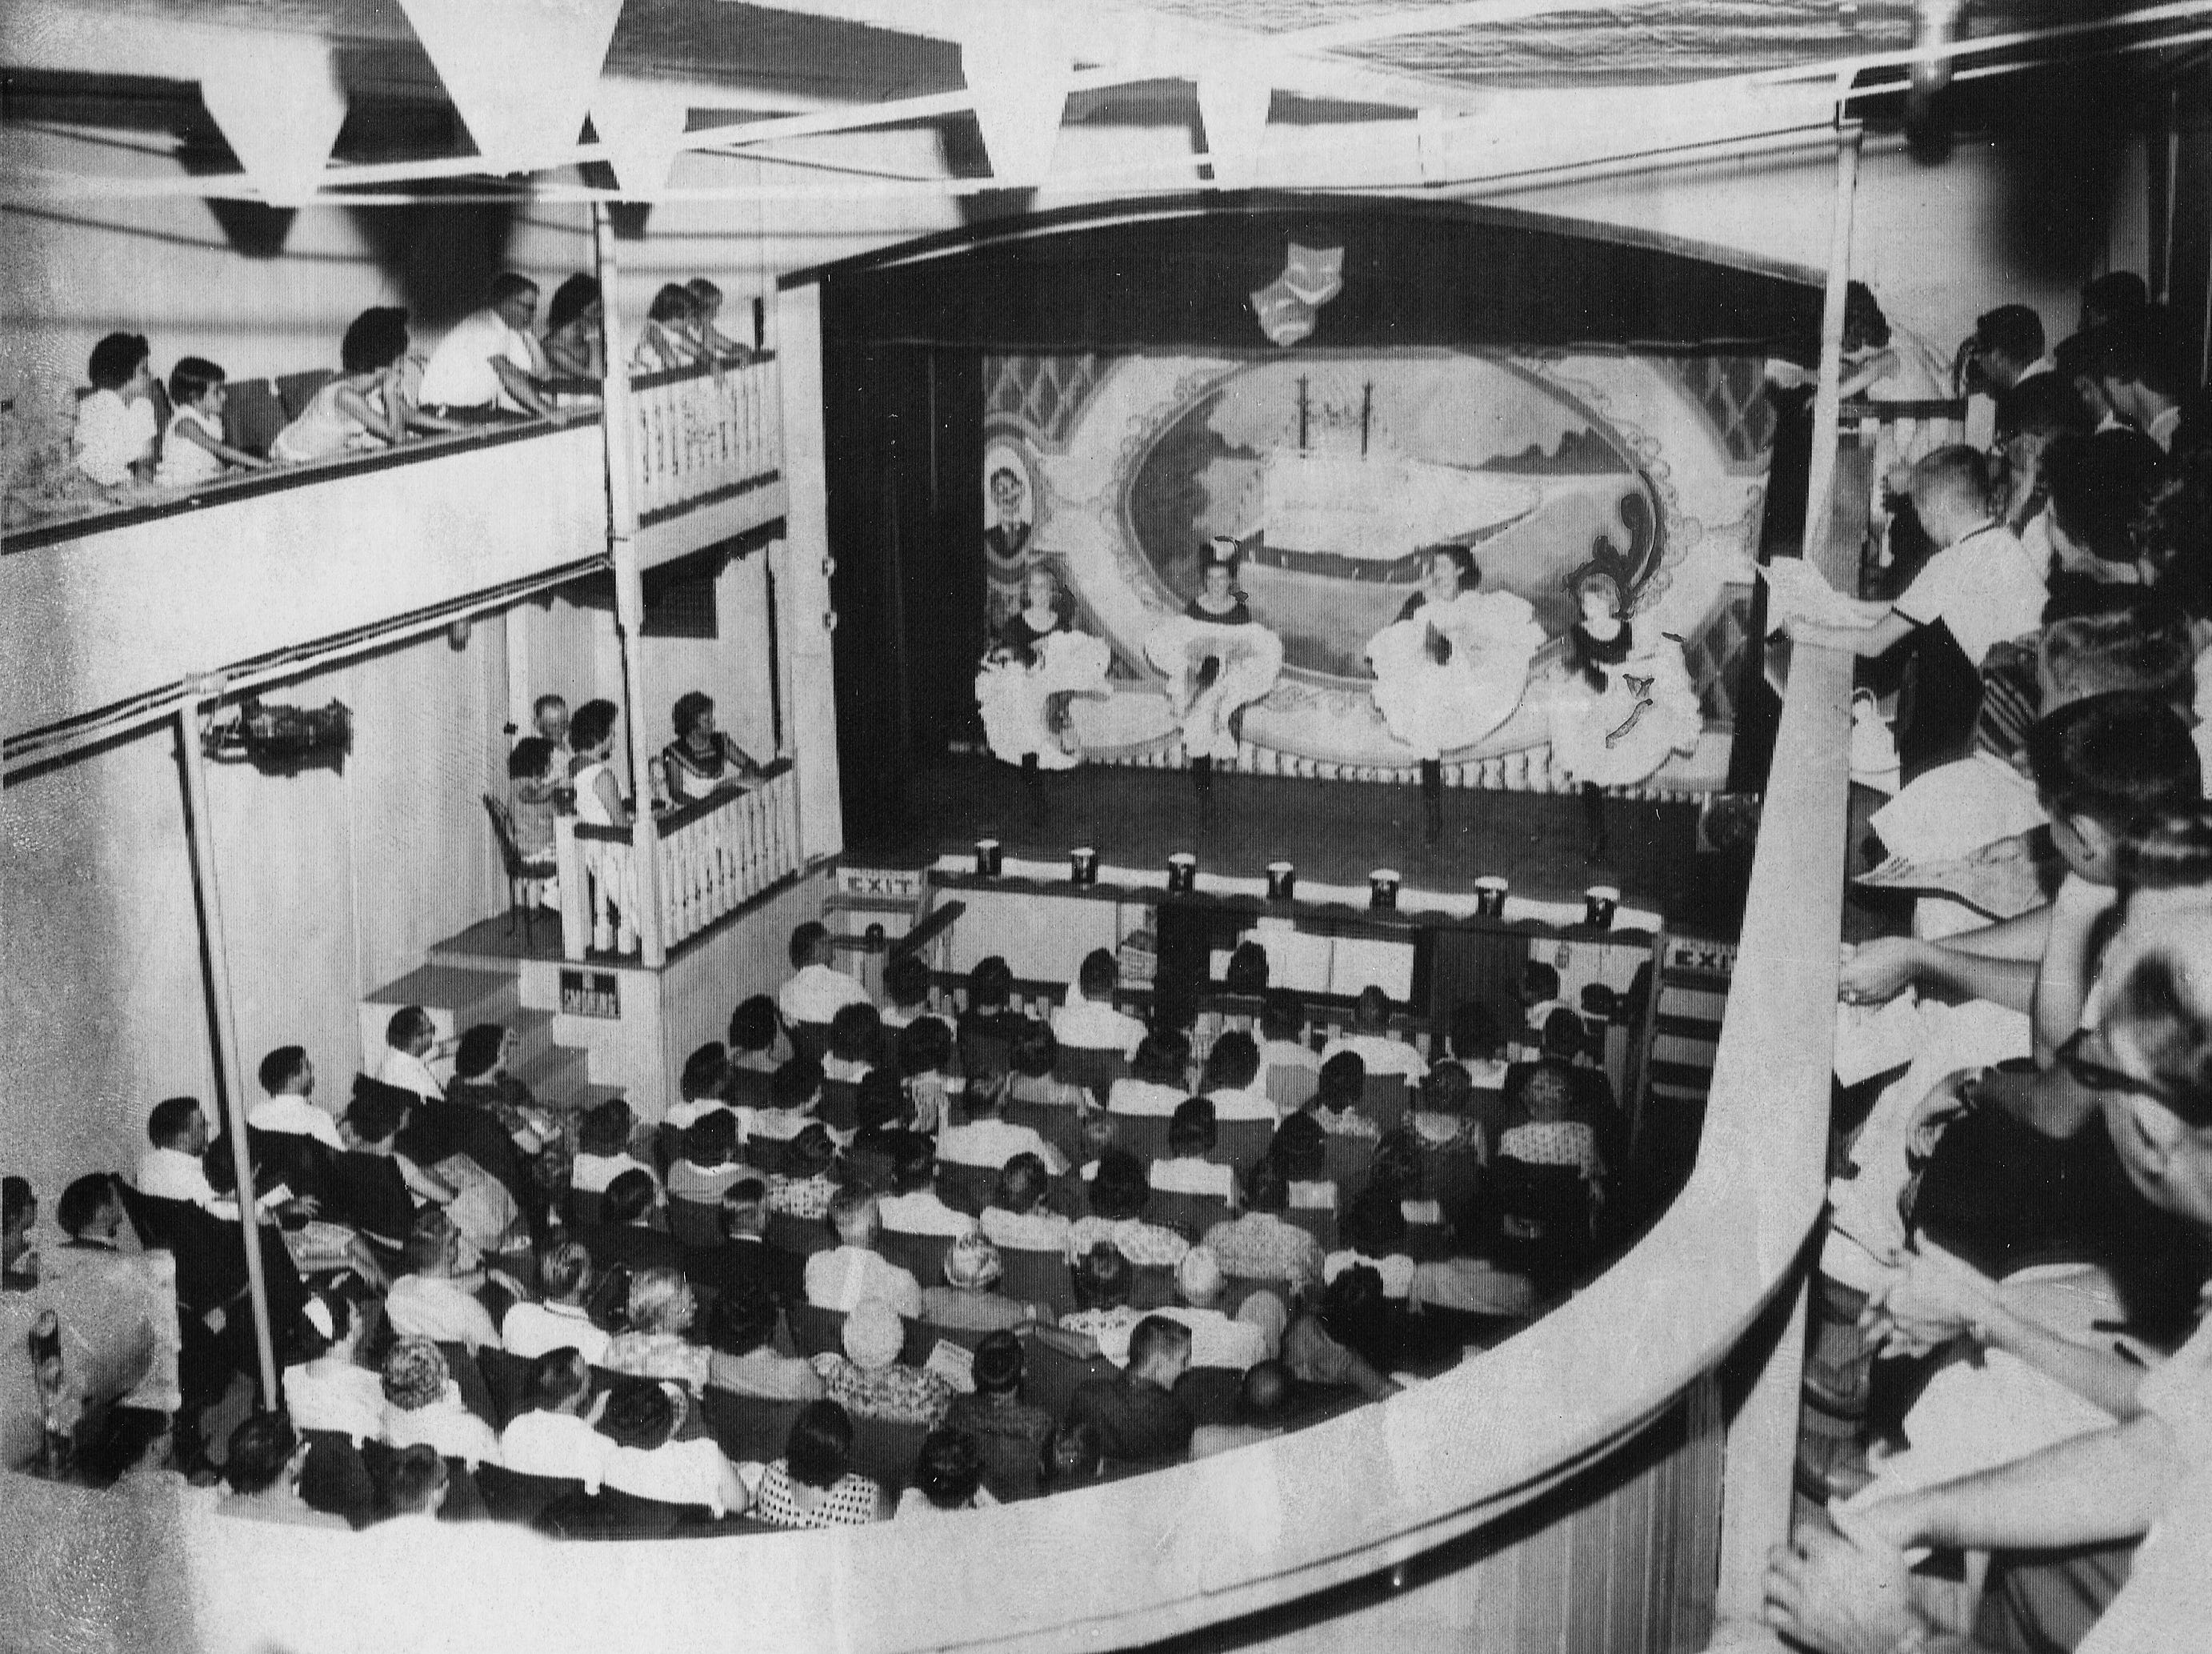 Chorus Line performs before a sellout crowd on the floating Indiana University Student Thearte, Riverboat Majestic in 1967.